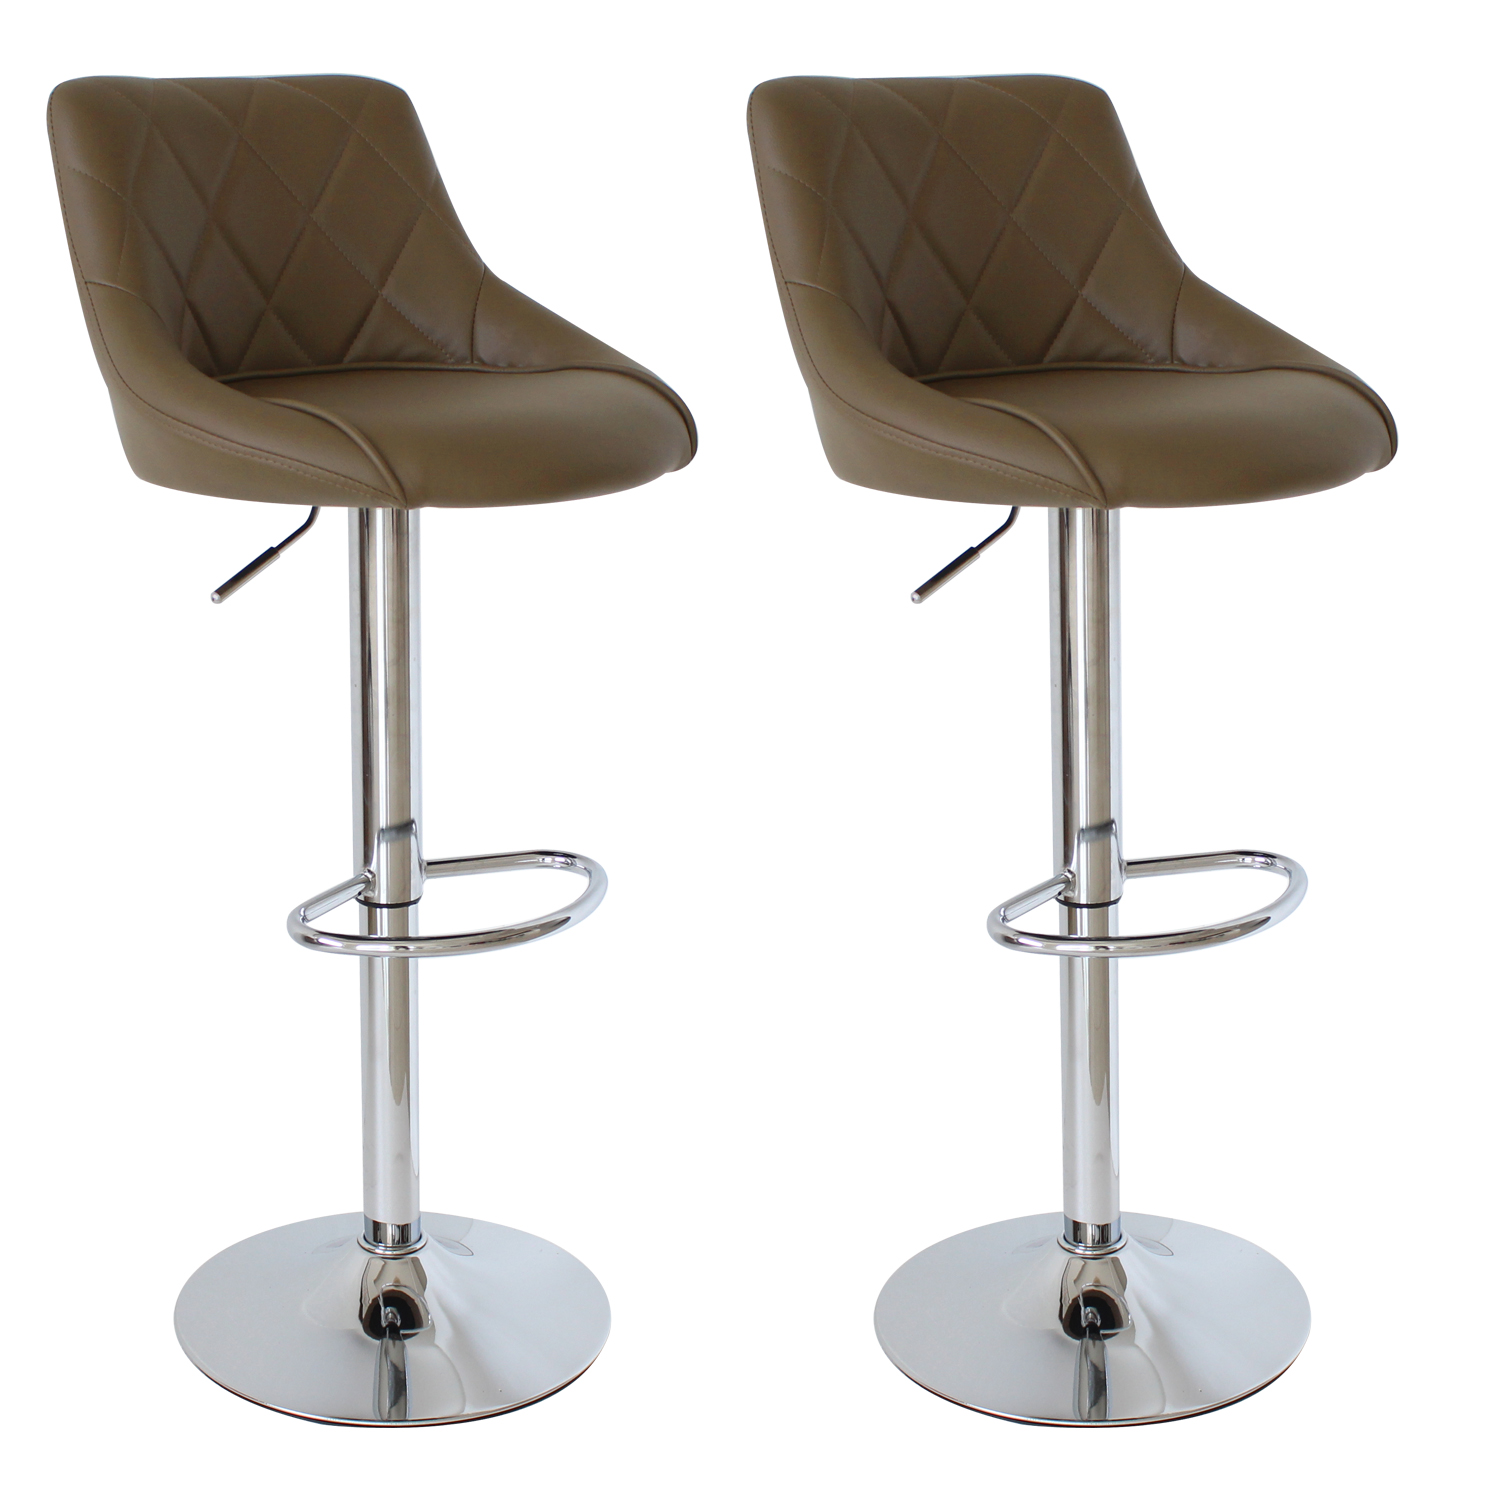 lot de 2 tabourets de bar avec dossier en pu chaise cuisine r glable f009 ebay. Black Bedroom Furniture Sets. Home Design Ideas